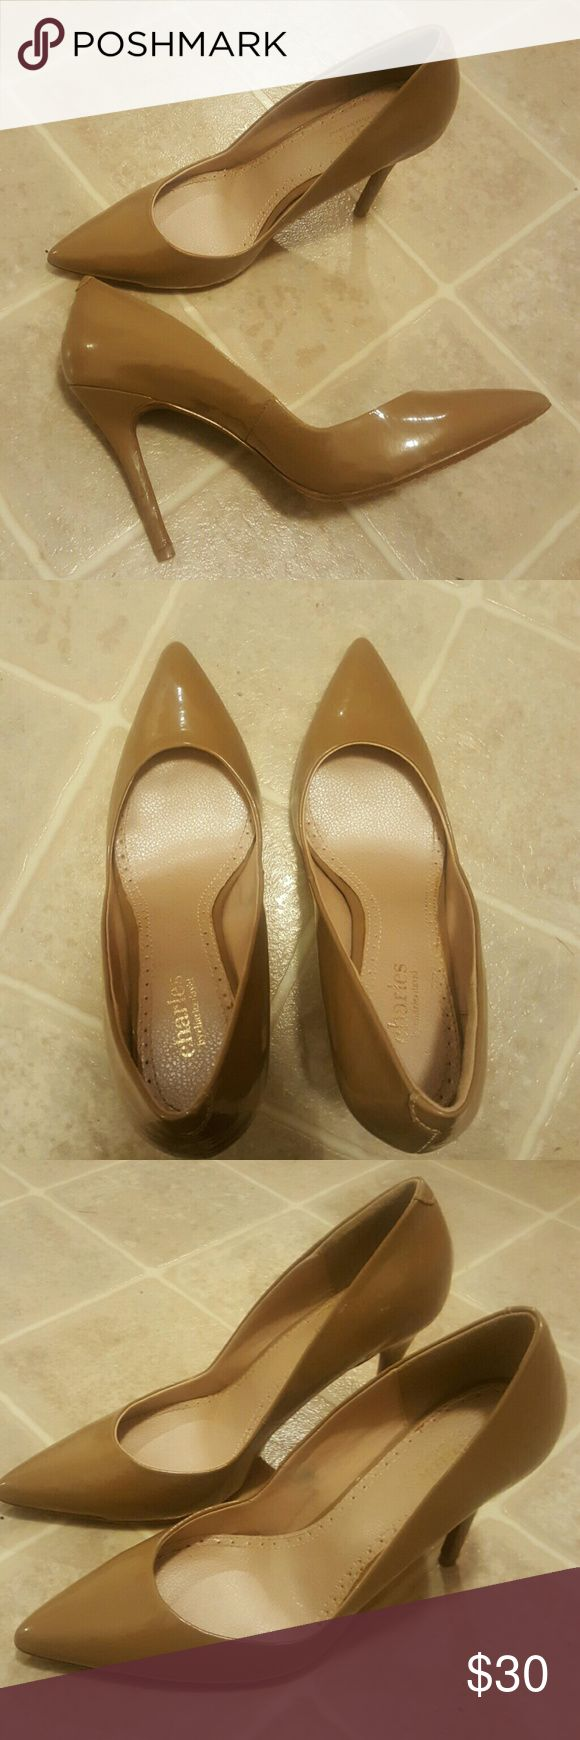 """Charles David Nude Pumps Charles David Nude pumps. Worn once for a few hours, still in excellent condition. No scuffs, tears or stains. Approx. 3"""" heel. Charles David Shoes Heels"""